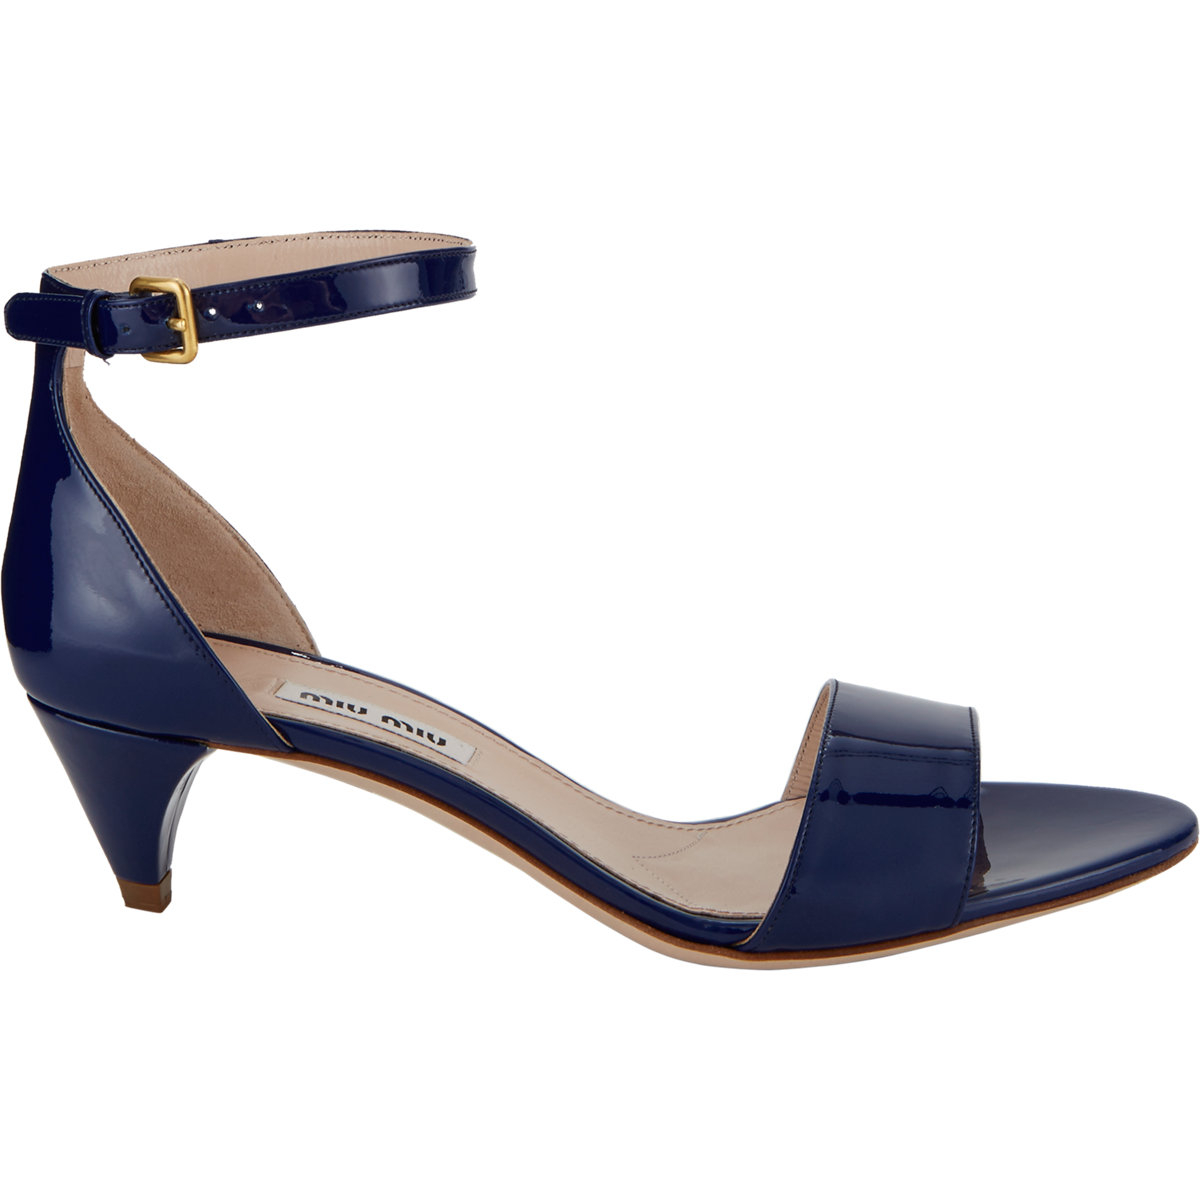 cec0383fb0 Miu Miu Patent Ankle-Strap Sandals in Blue - Lyst